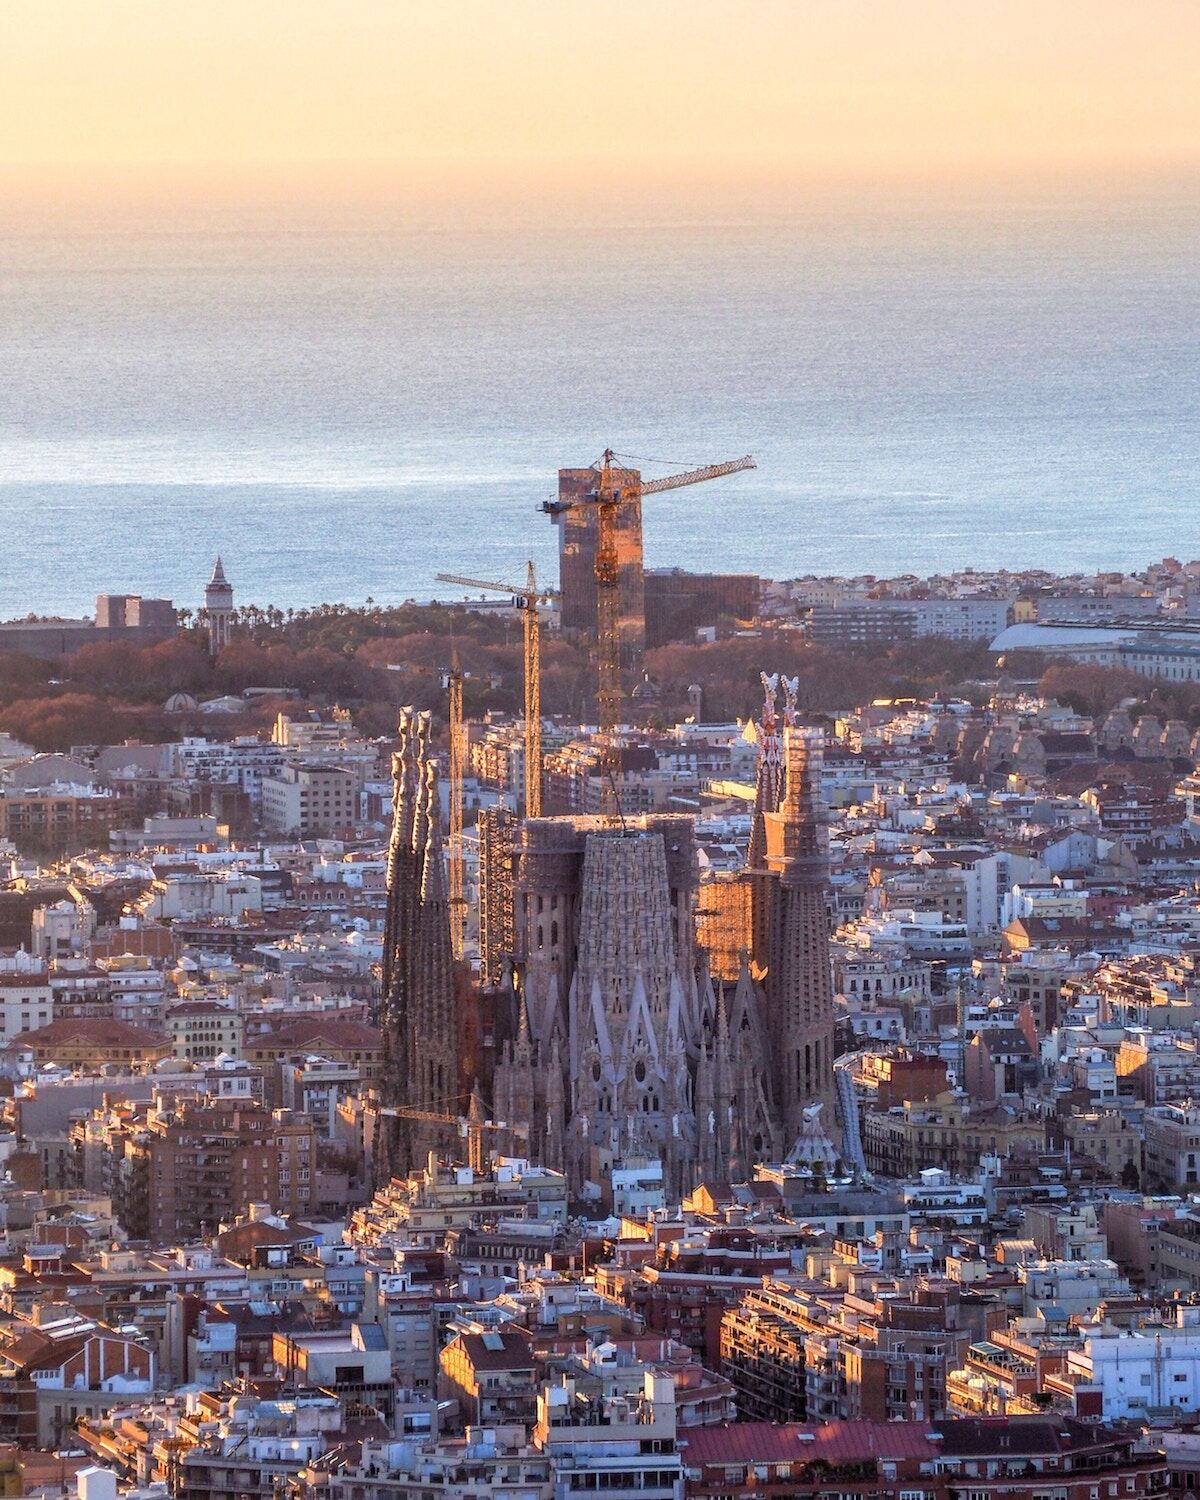 A view of the Sagrada Família in Barcelona. Photo by Alex Reiss on Unsplash.